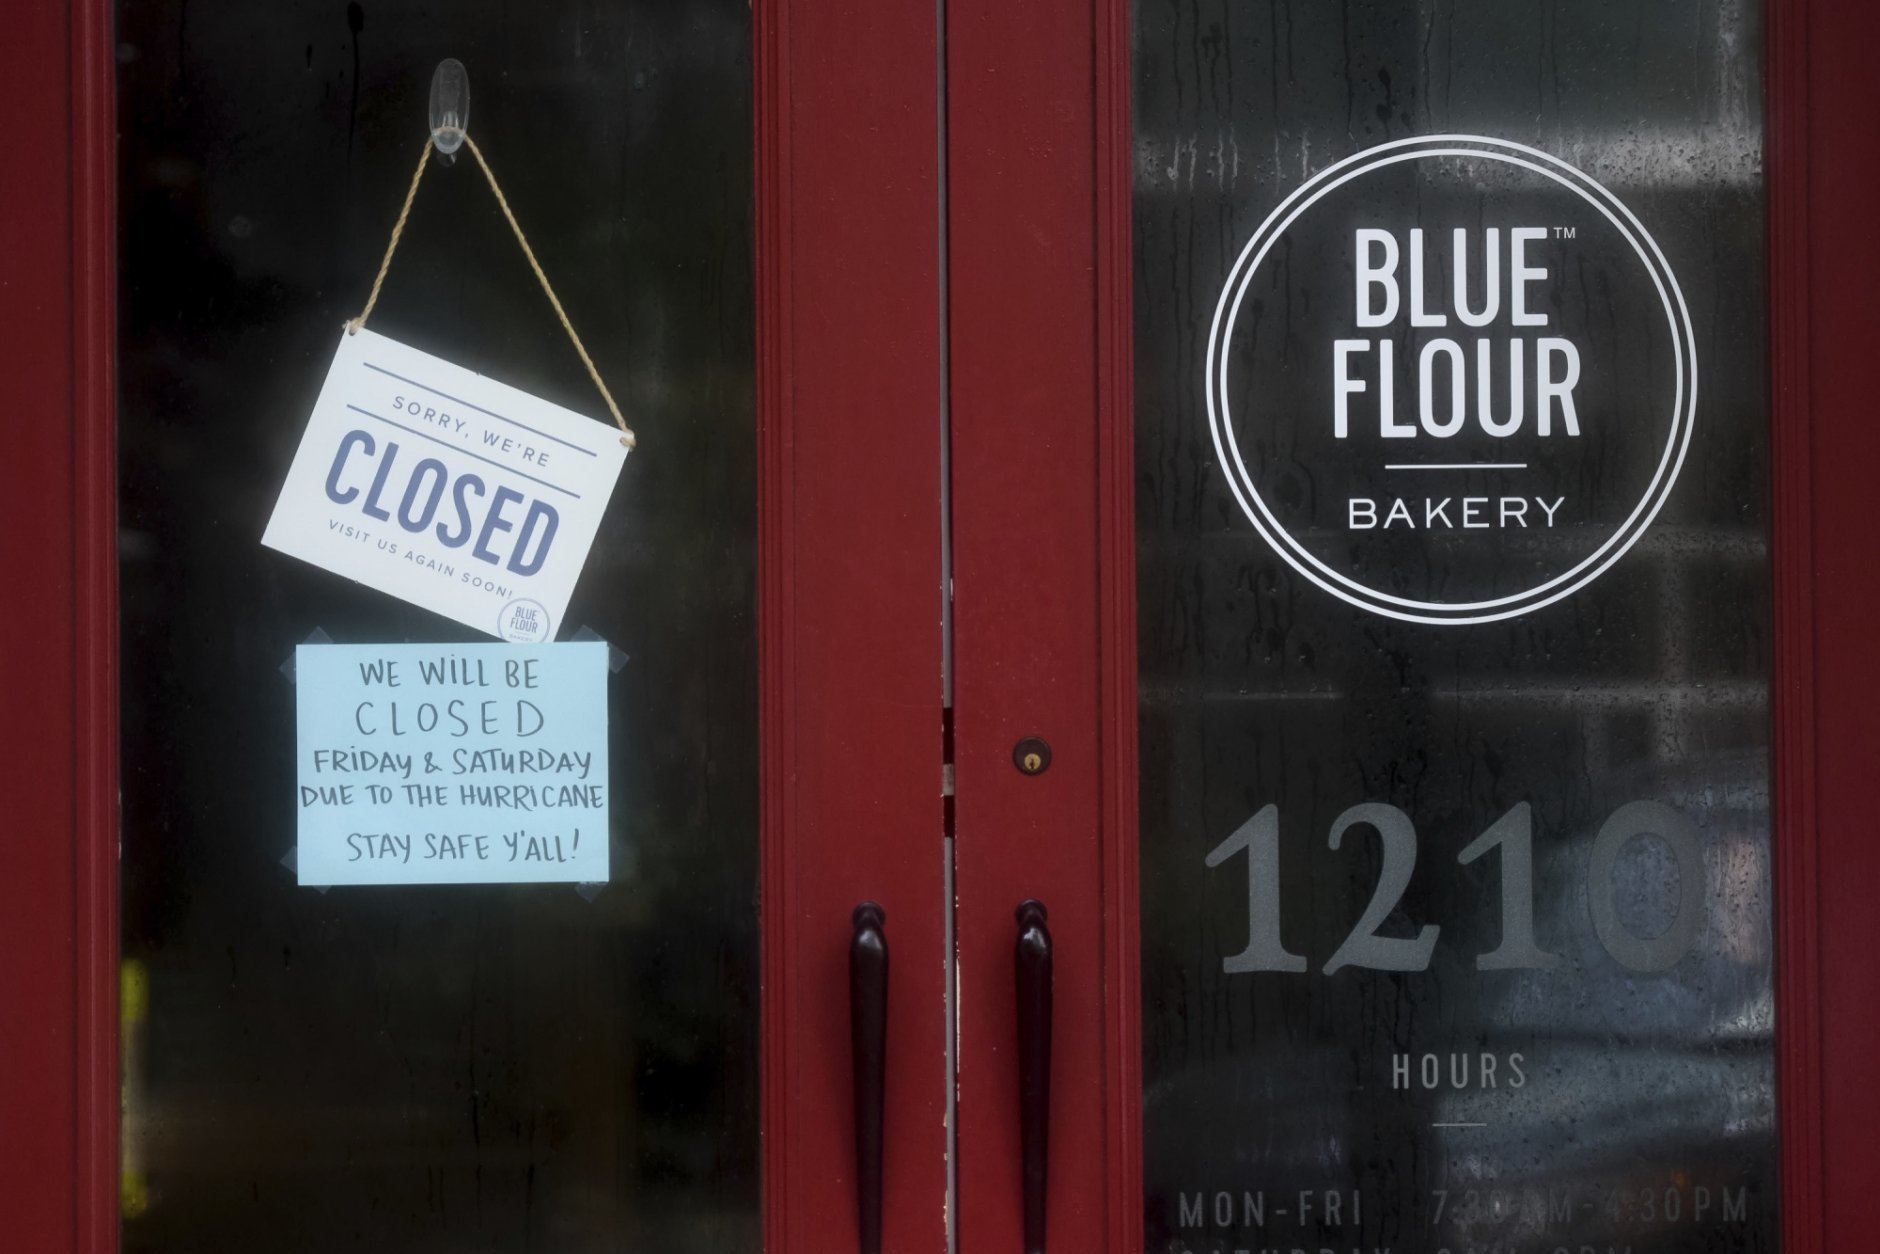 A closed sign hangs from the front door of the Blue Flour bakery on Main St. in Columbia, S.C. as the remnants of Hurricane Florence slowly move across the East Coast Saturday, Sept. 15, 2018. (AP Photo/Sean Rayford)